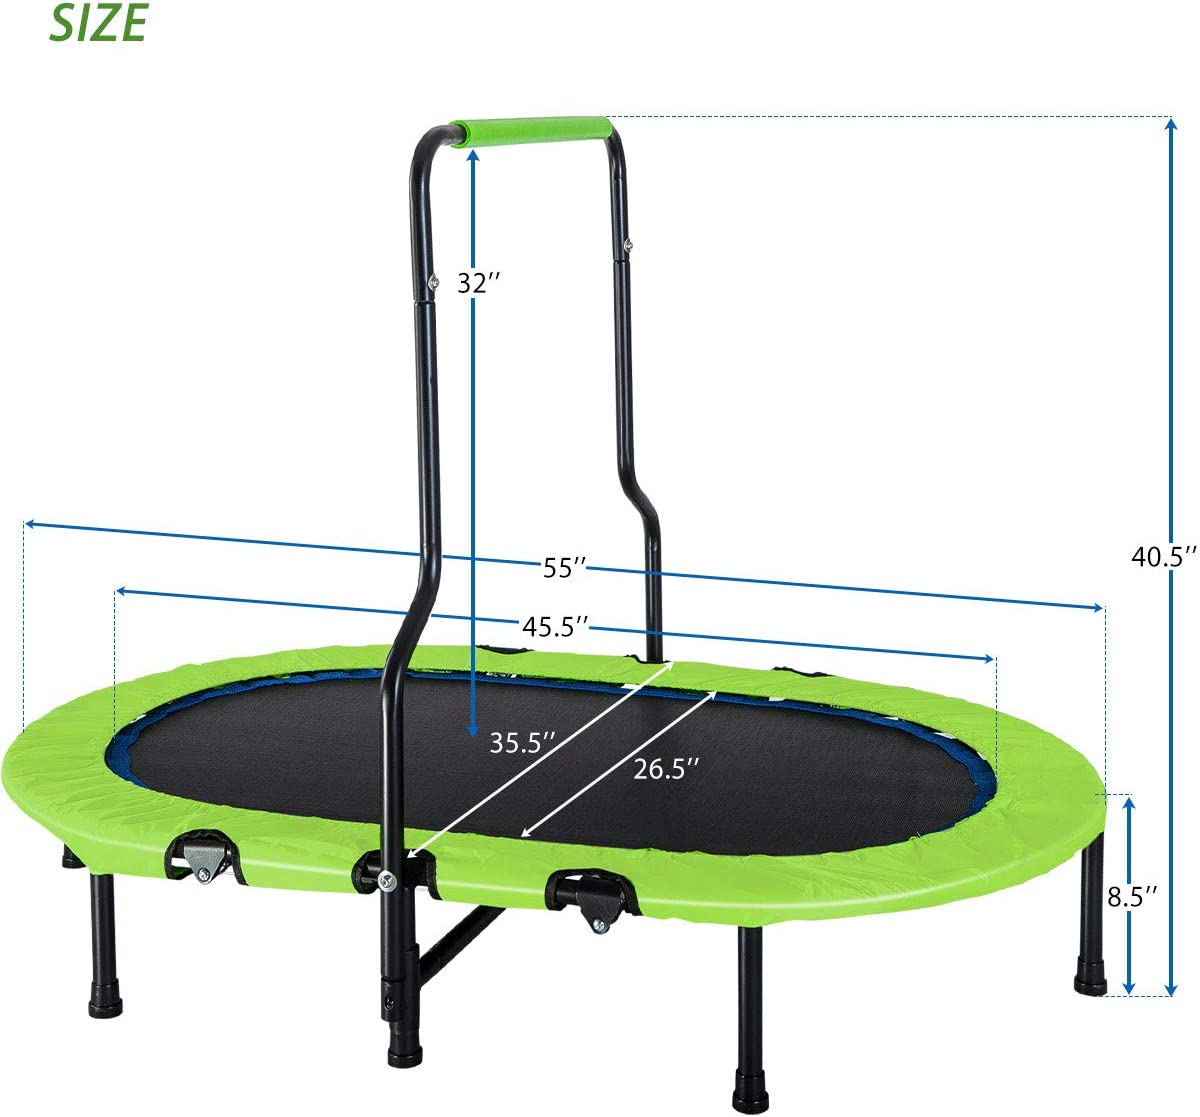 Foldable No-Spring Band Rebounder Green Merax Kids Trampoline with Handrail and Safety Cover Mini Trampoline for Two Kids